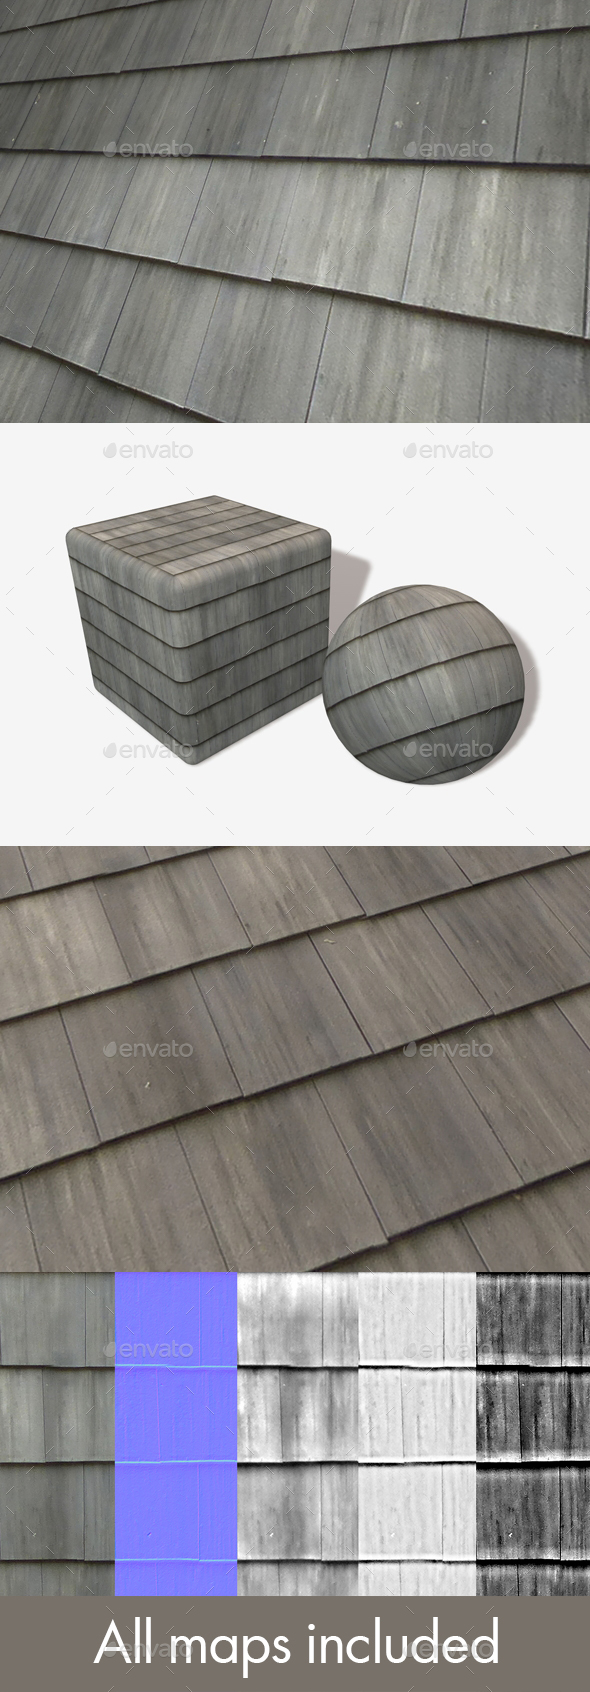 Grey Plastic Roof Tiles Seamless Texture - 3DOcean Item for Sale